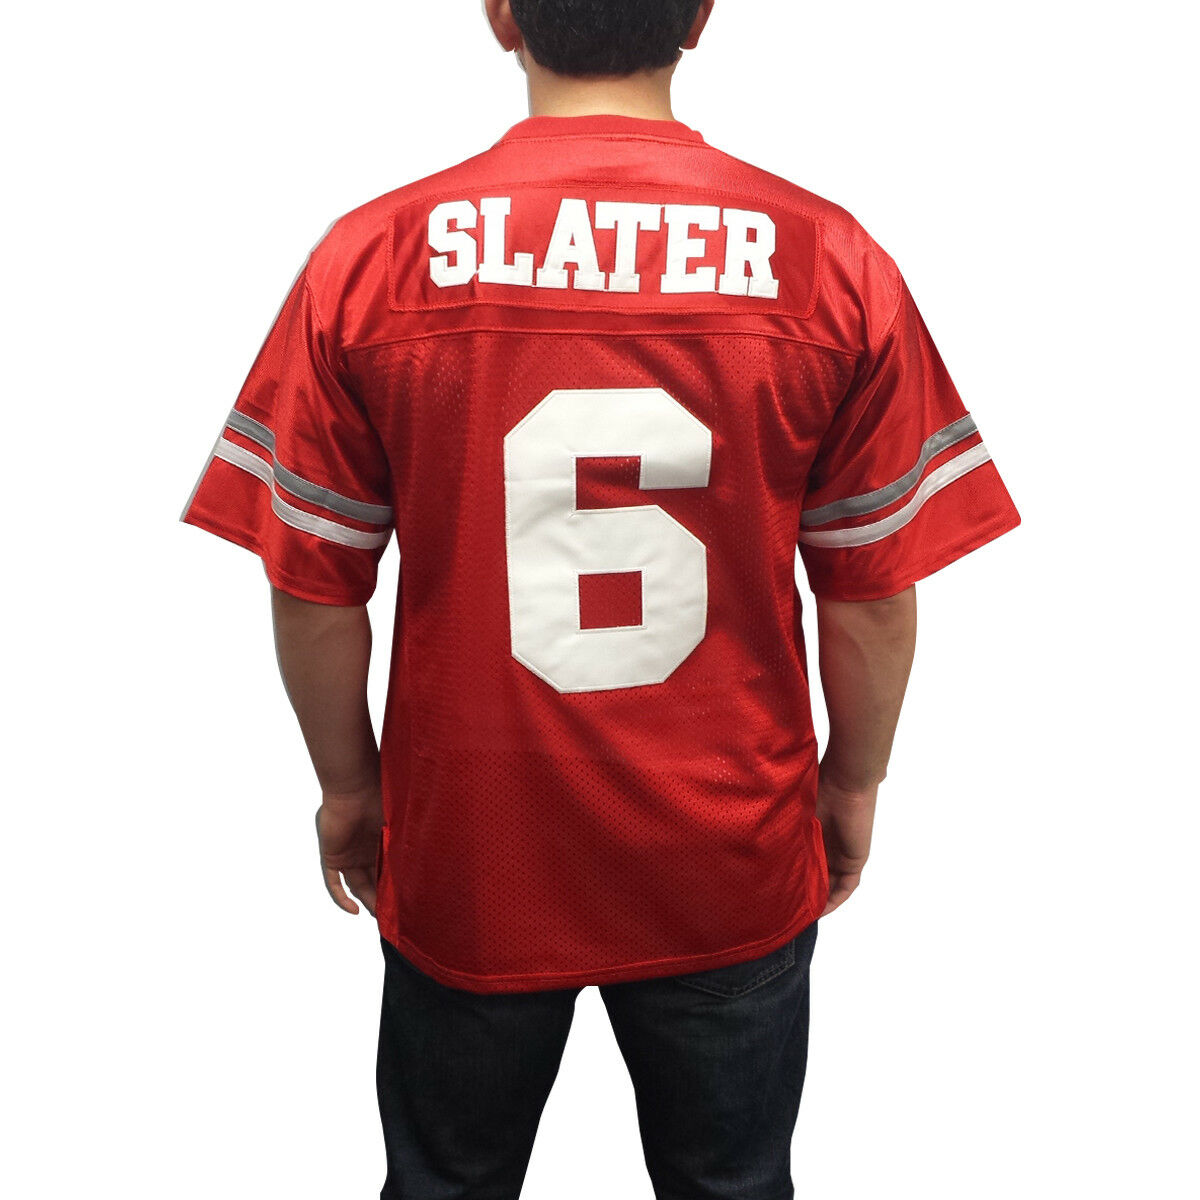 A.C. Slater  6 Bayside Footbtutti Jersey Saved By The Bell AC Costume Uniform TV